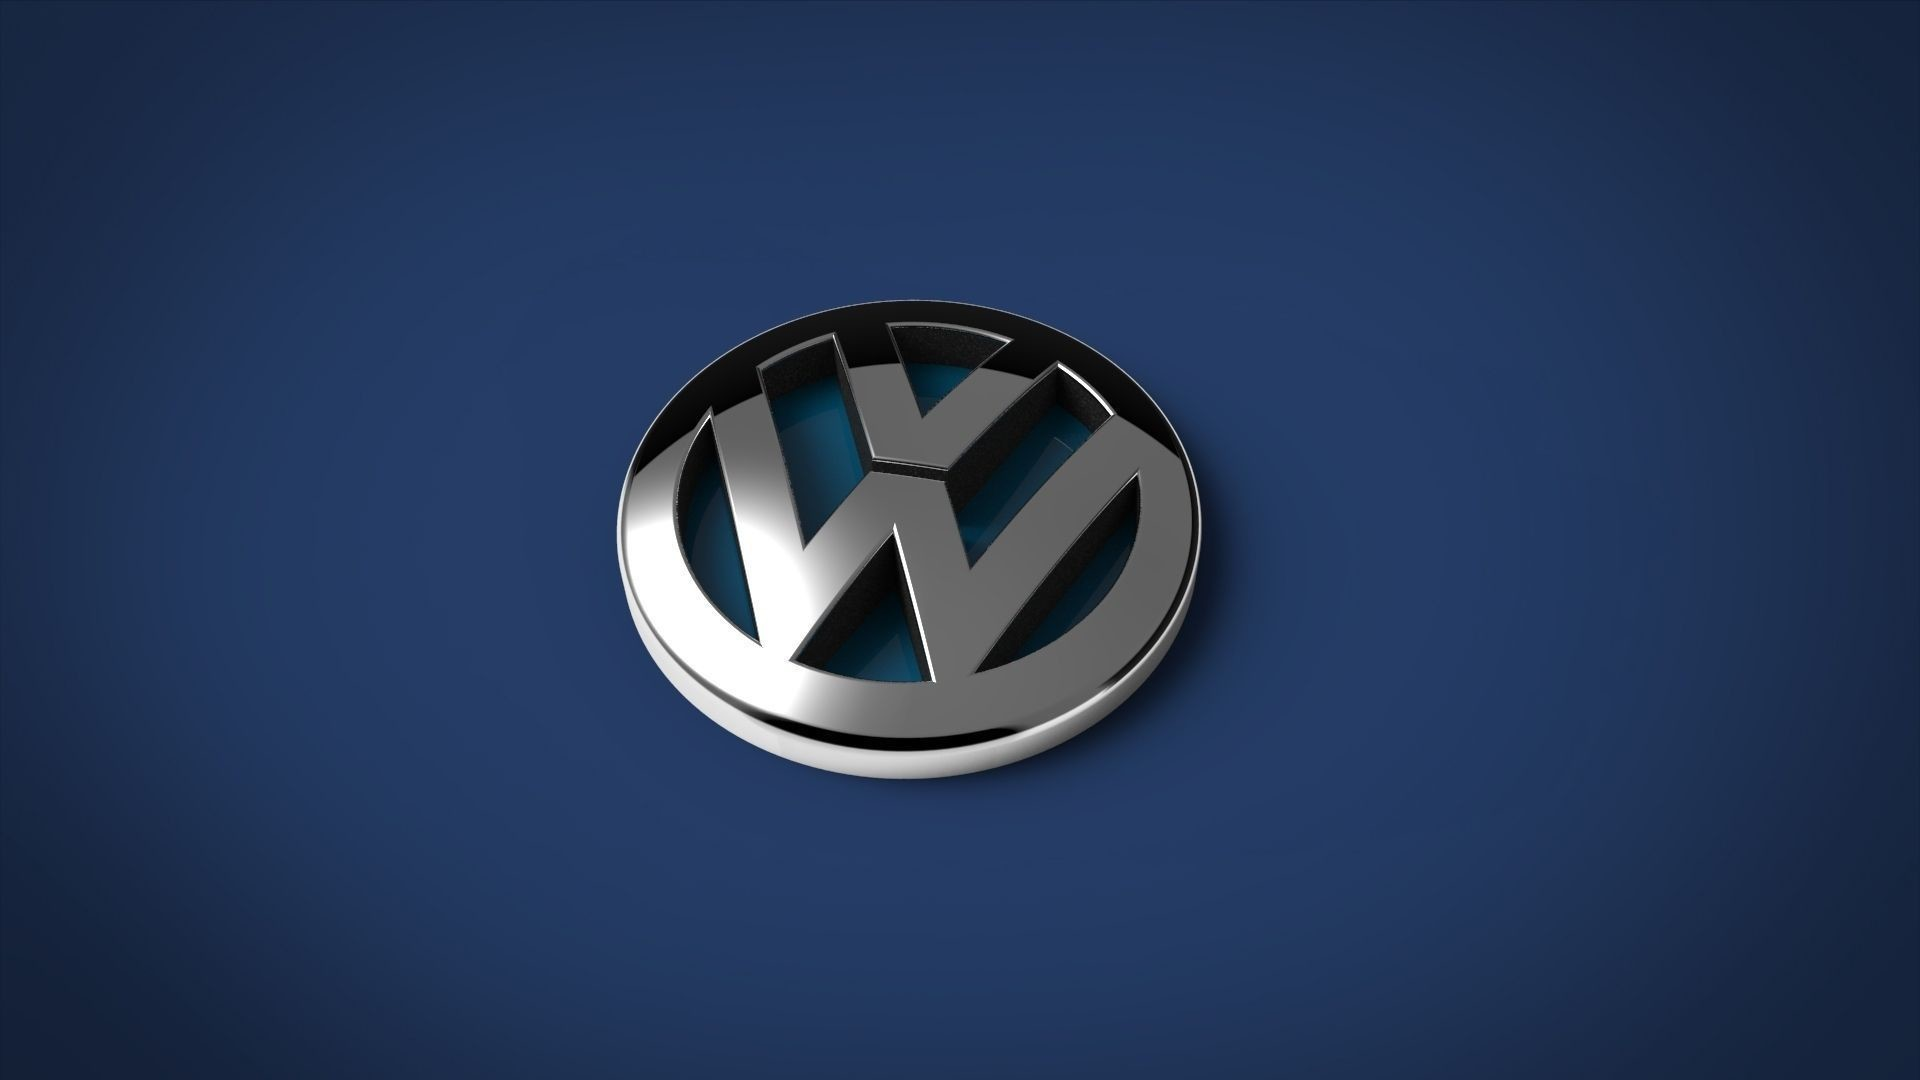 Res: 1920x1080, volkswagen logo 3d wallpaper